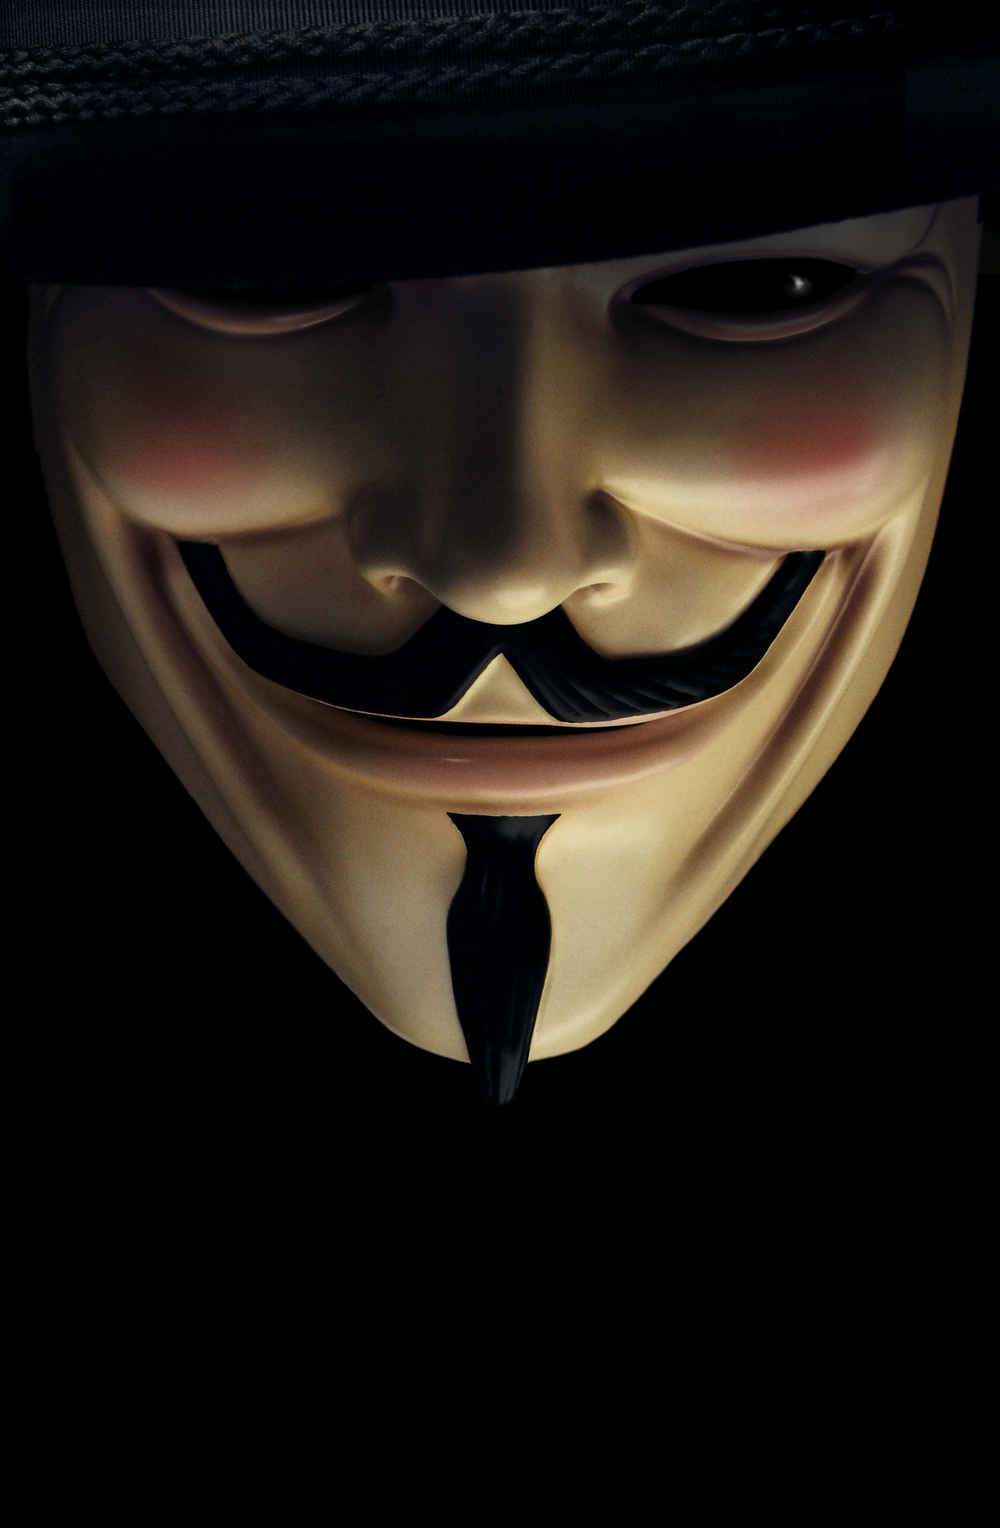 V4Vendetta_Mask_1500.jpg